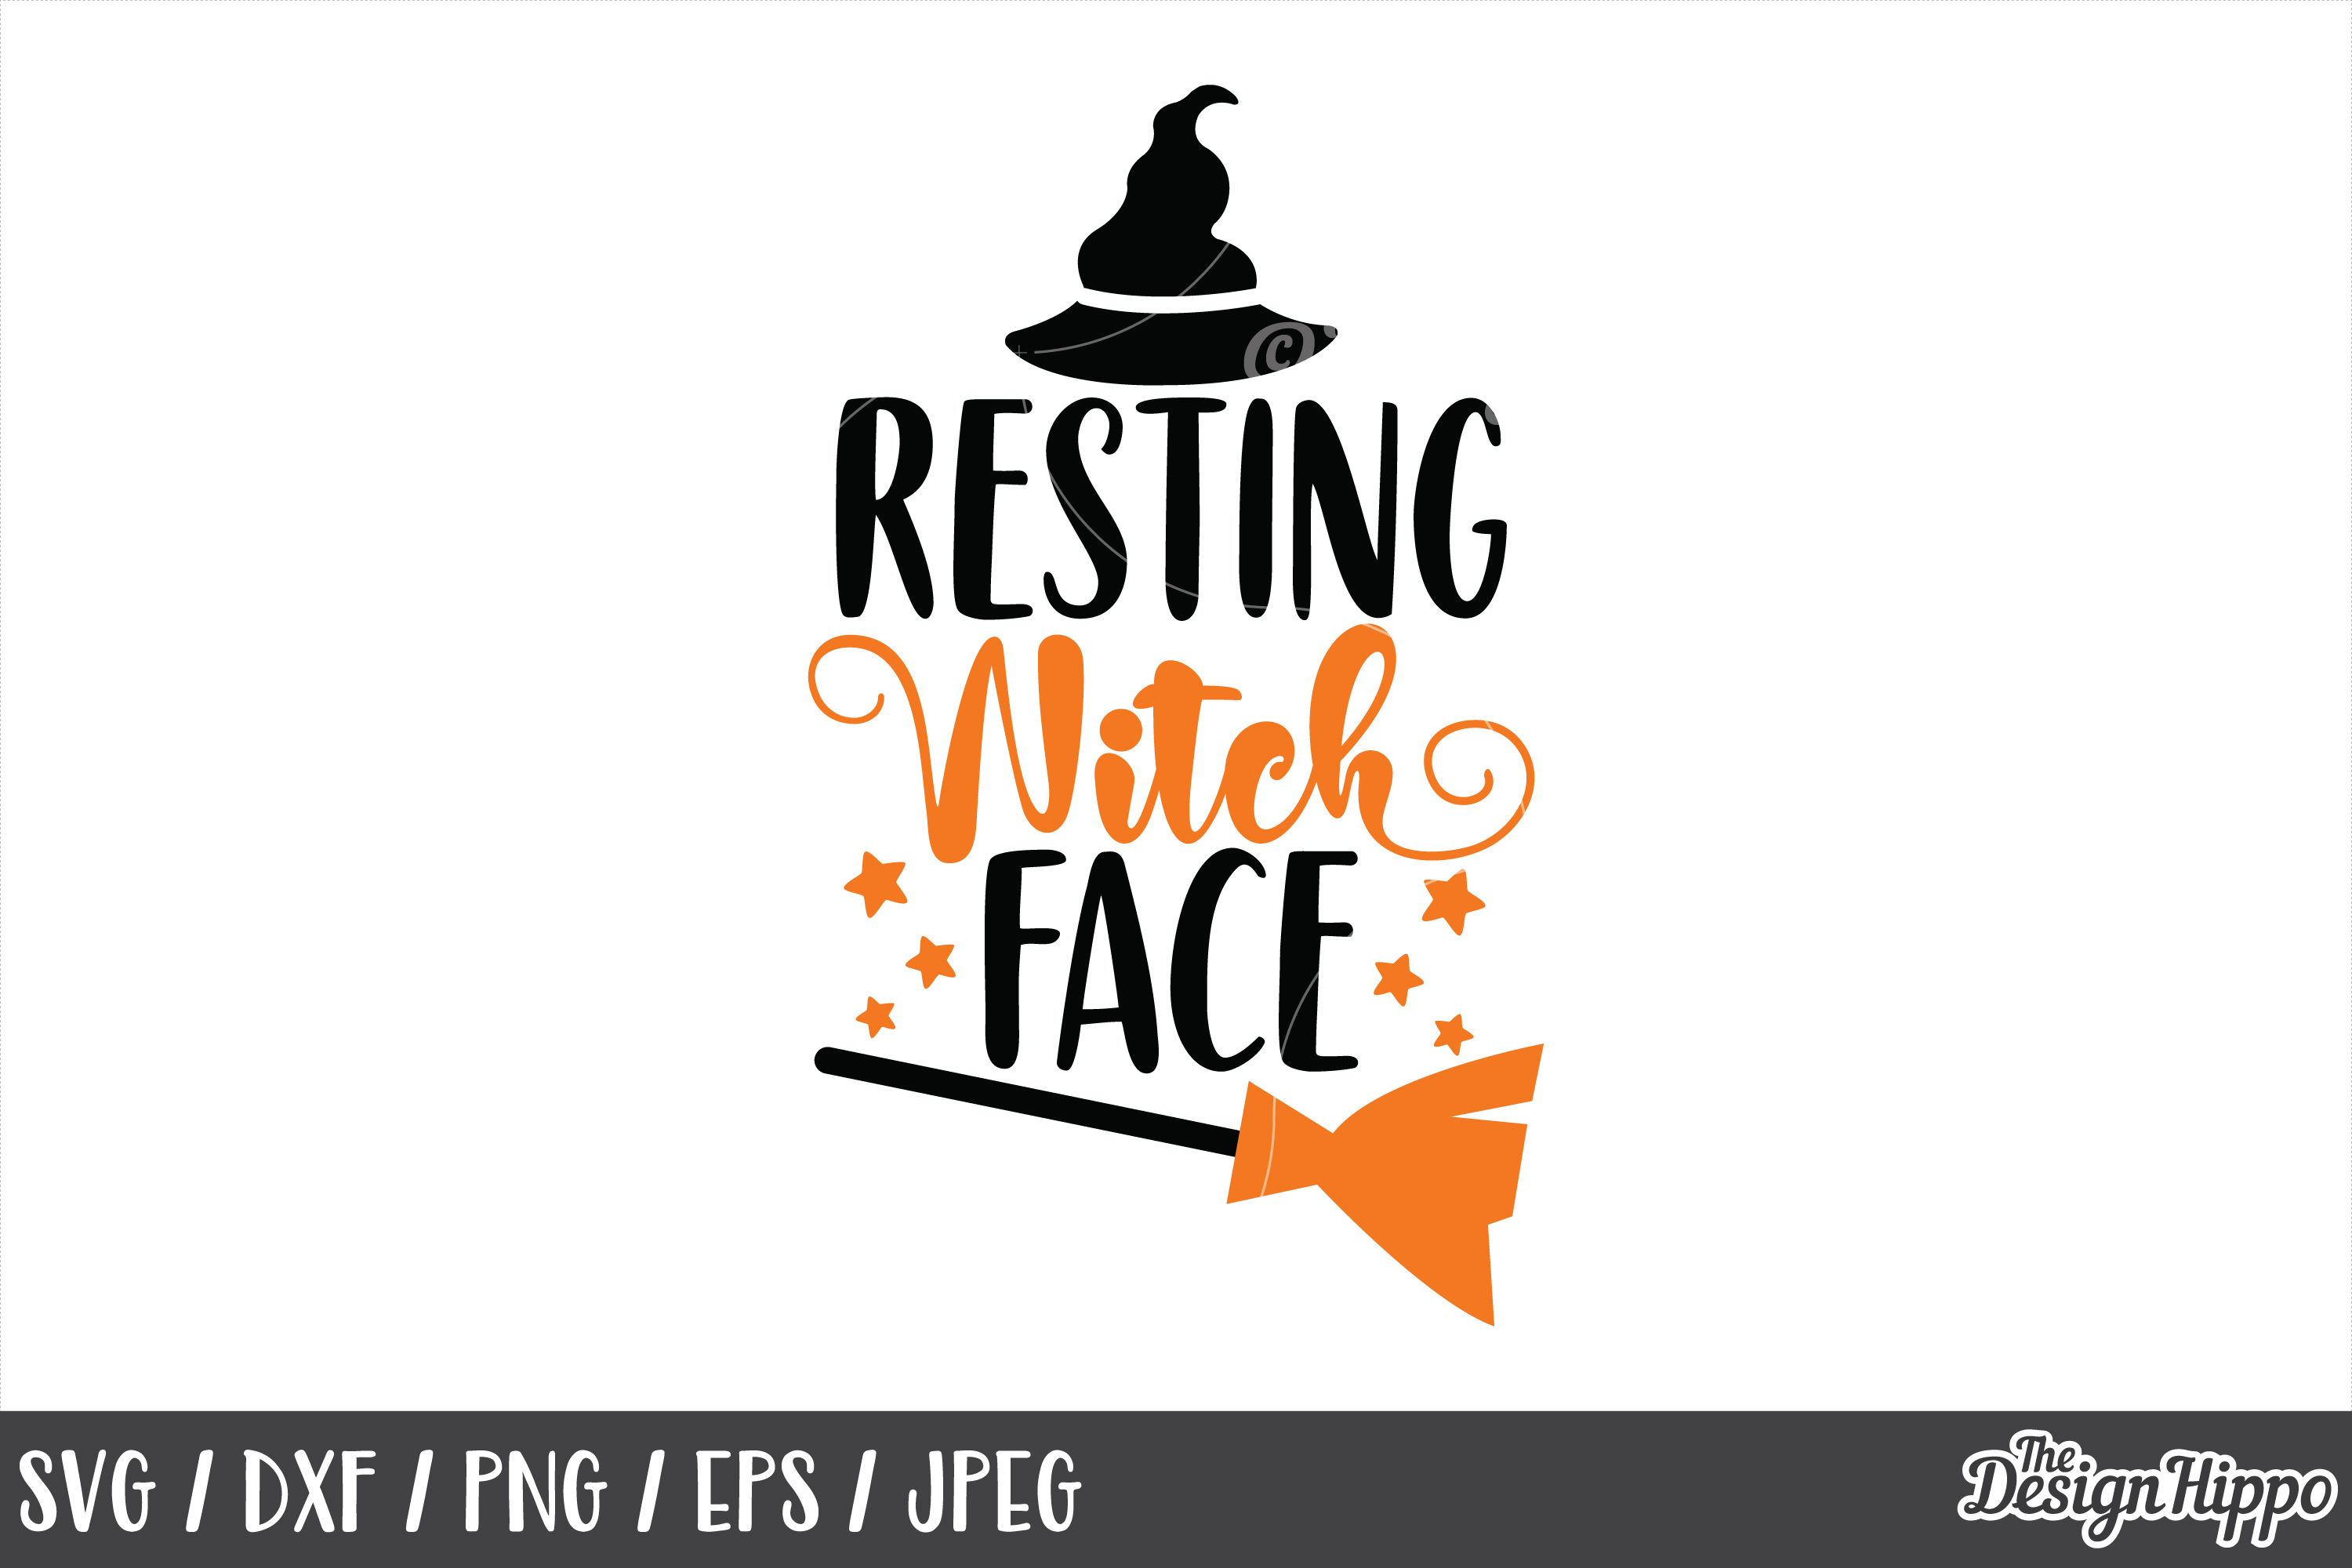 Resting witch face SVG, Halloween, Witch hat, Broom, PNG DXF example image 1